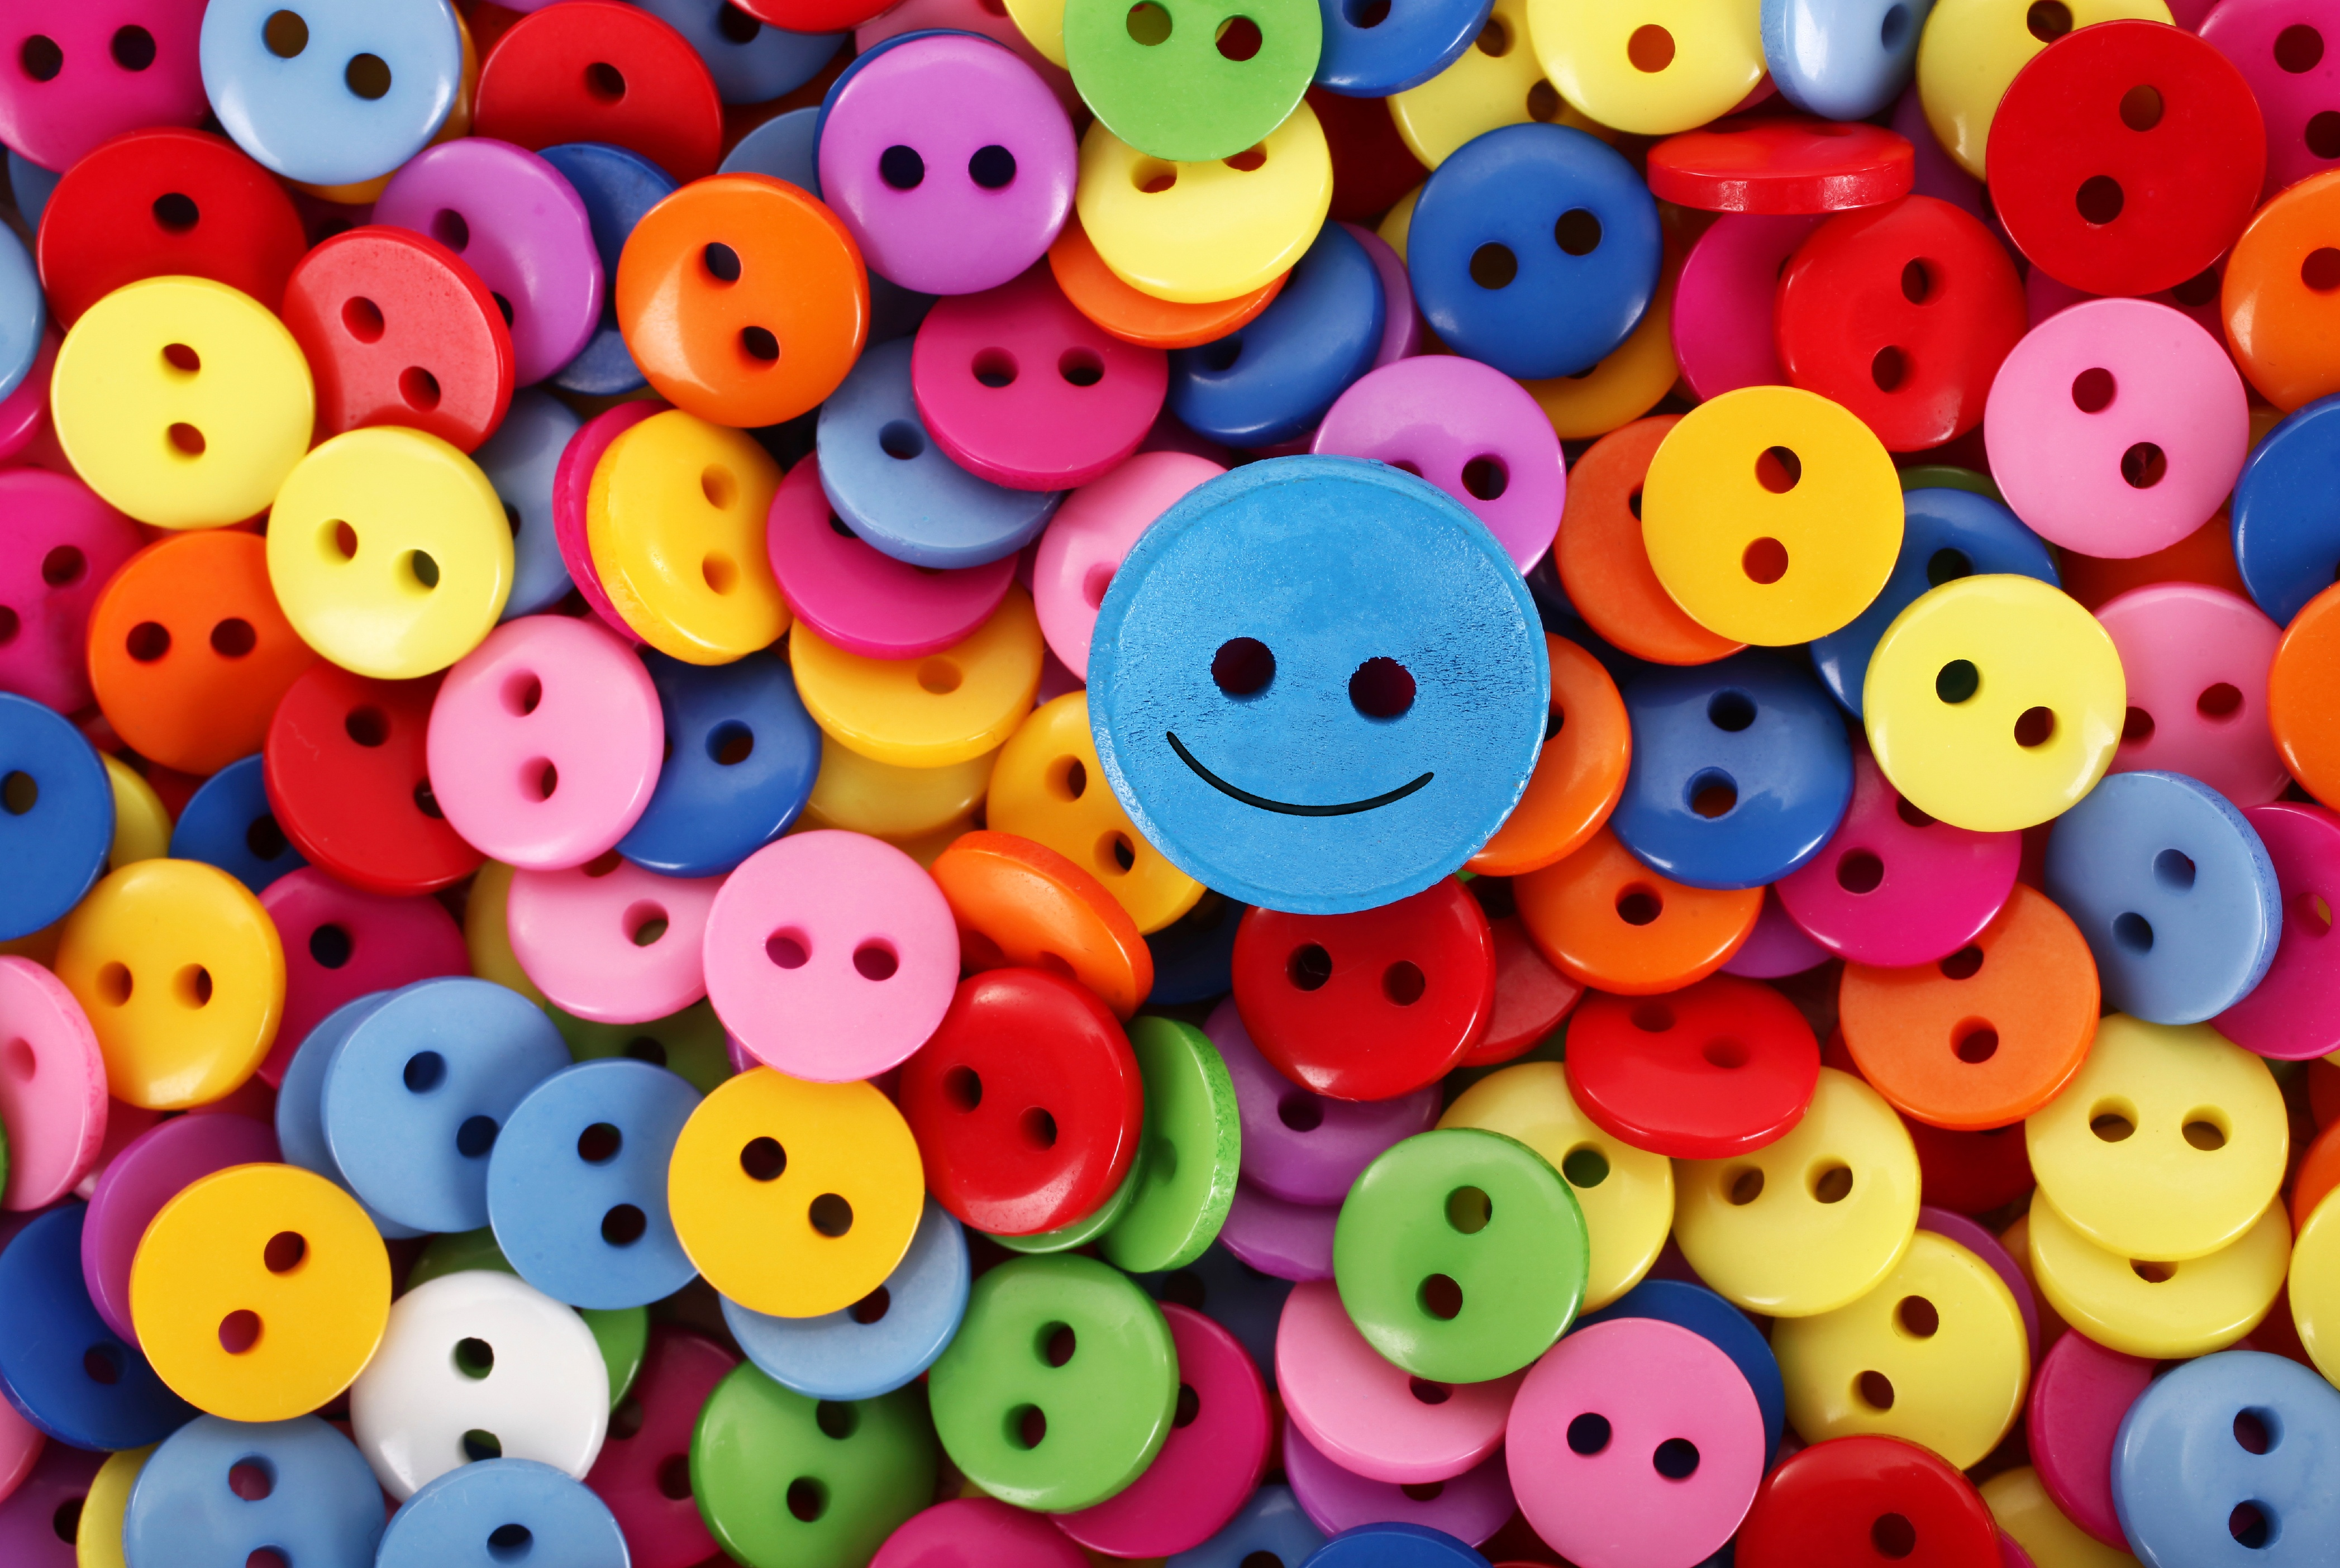 Happy_Buttons.jpg